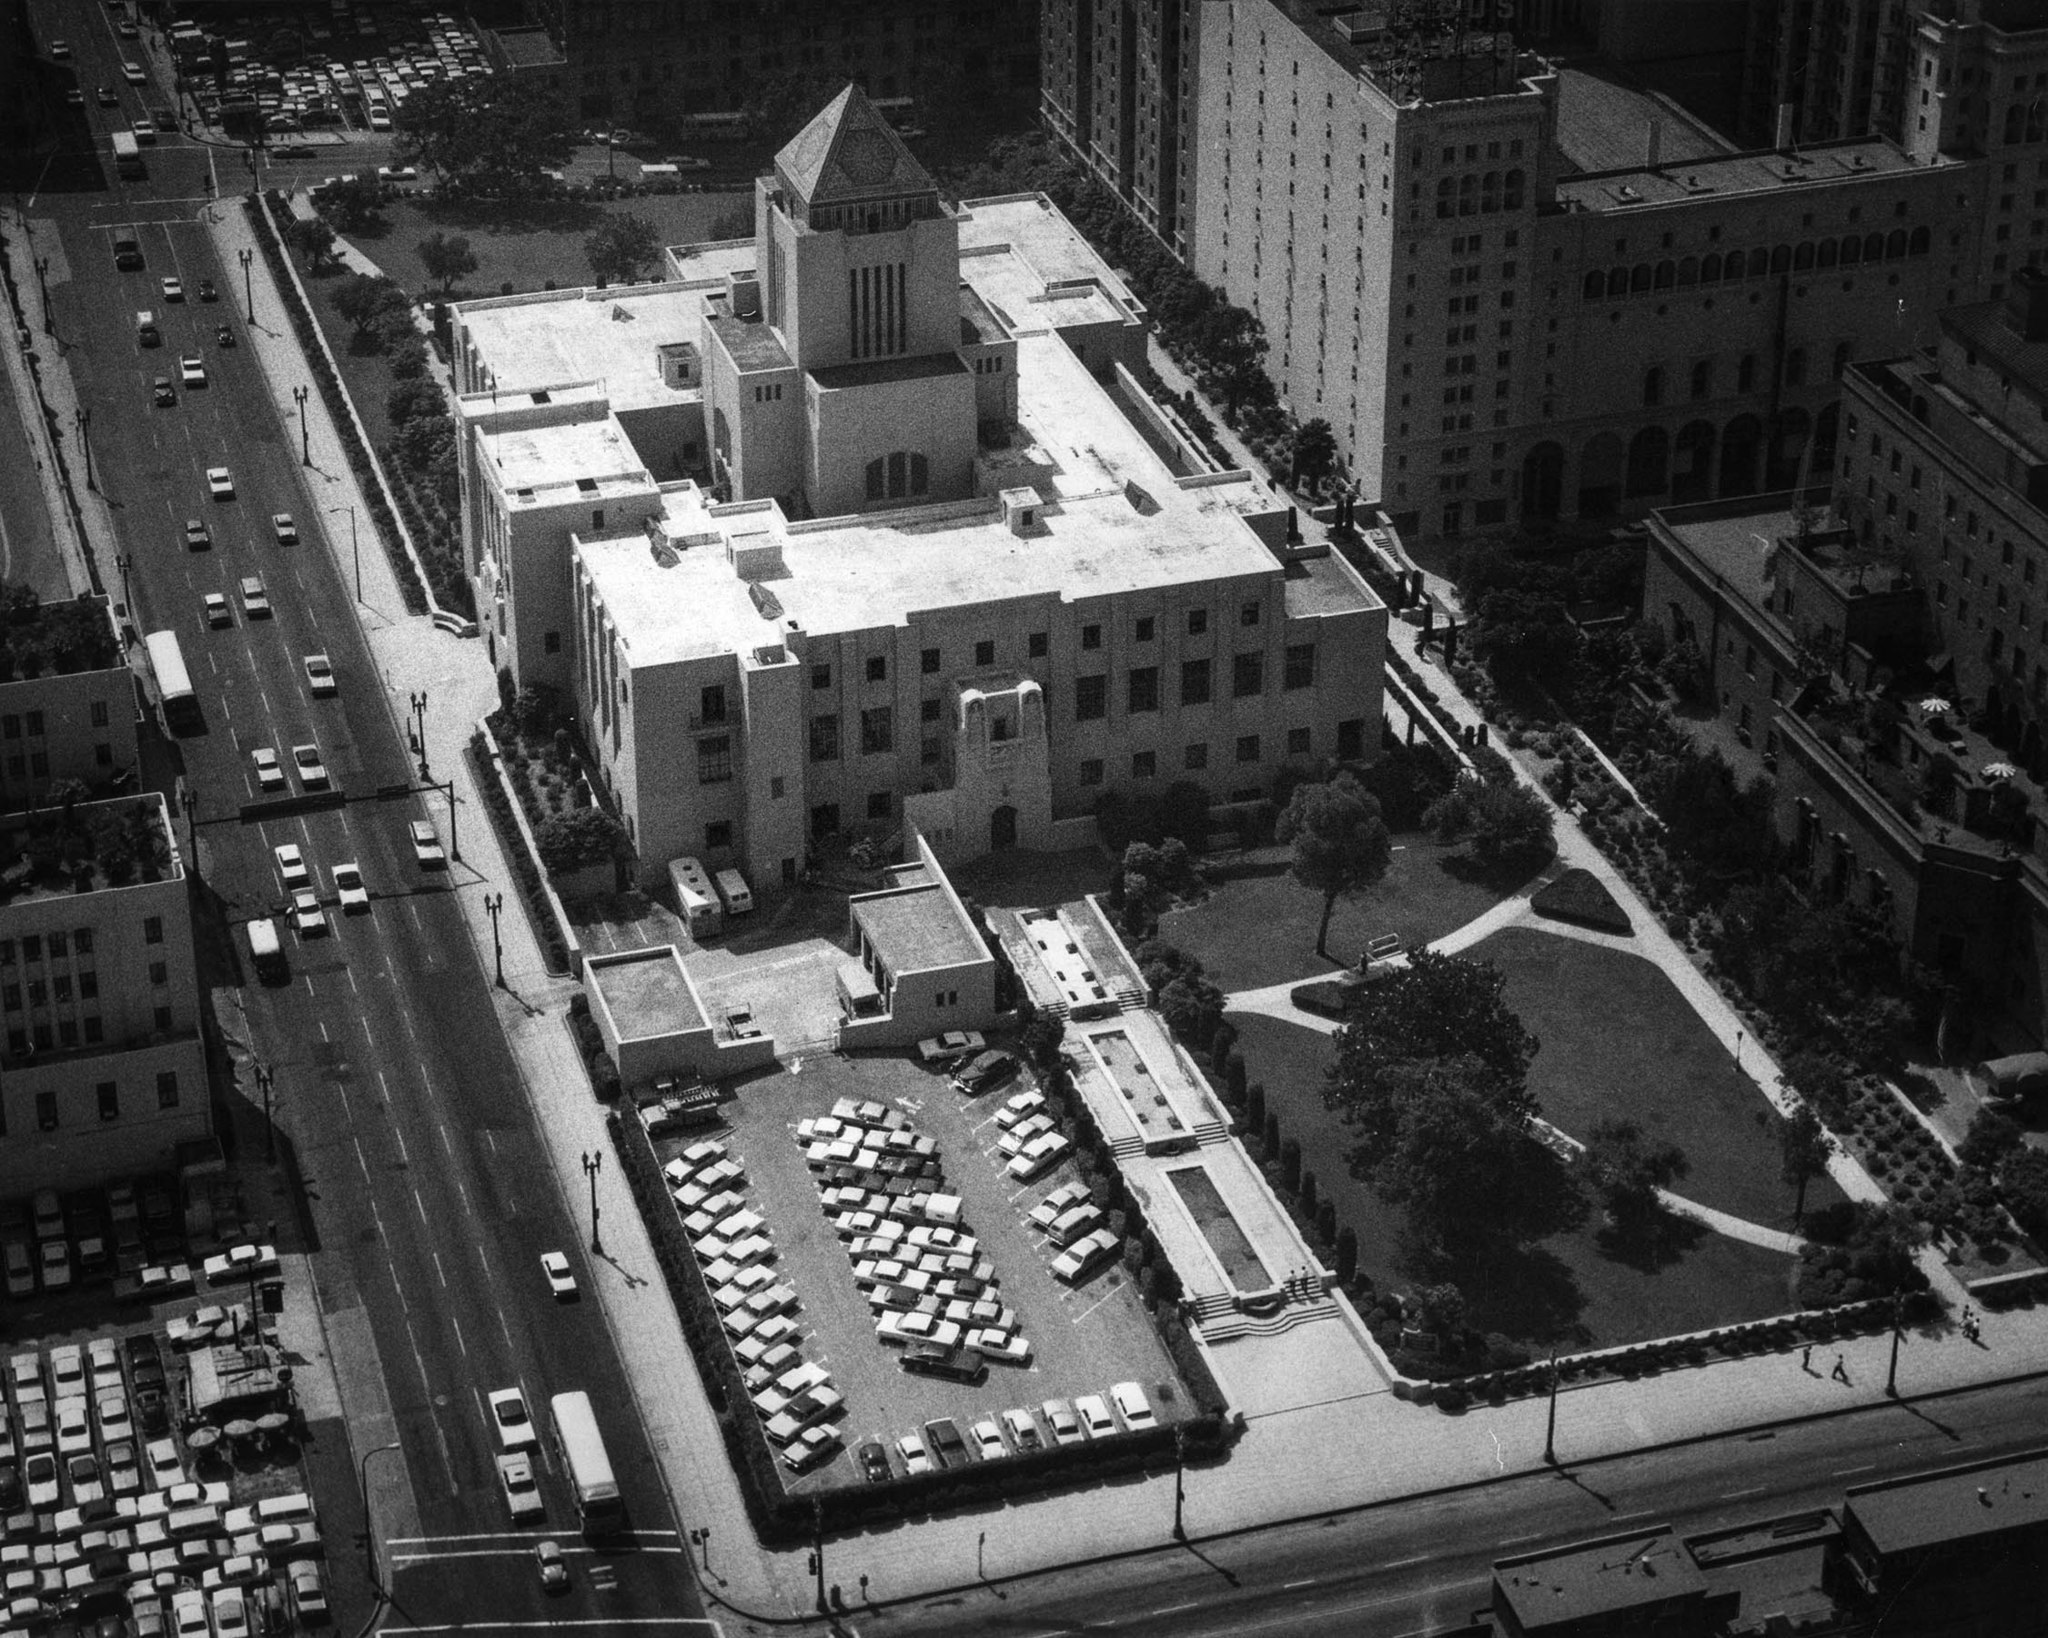 July 24, 1969: View of the Los Angeles Central Public Library taken from Union Bank Square. This pho